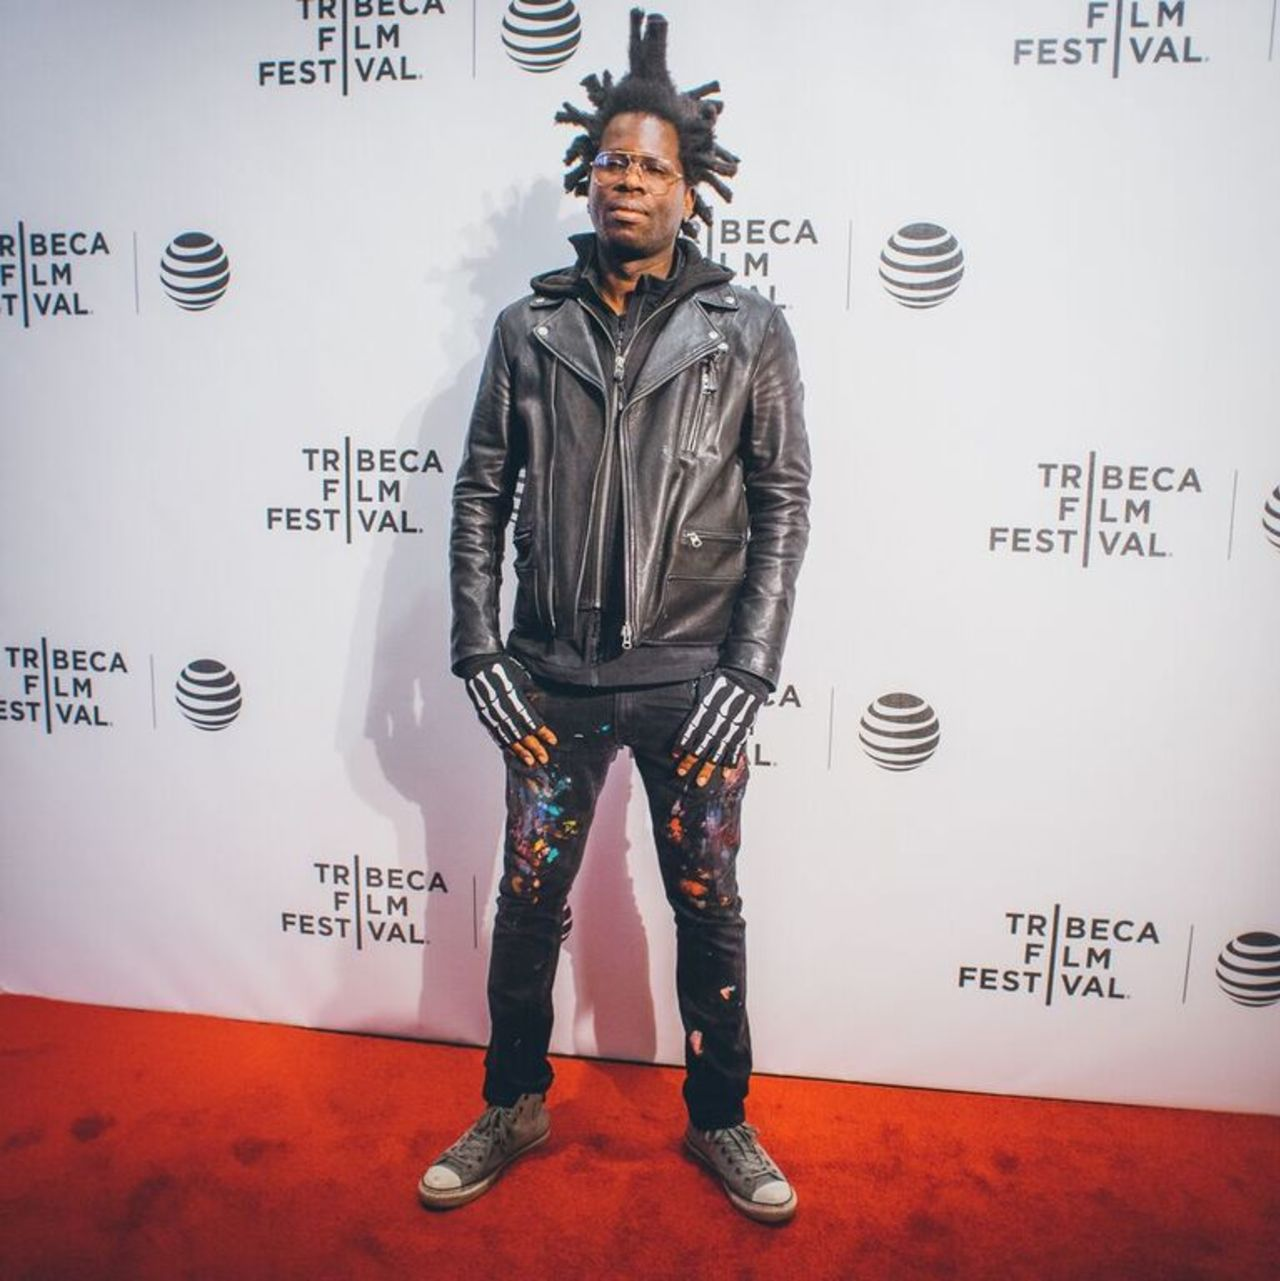 Bradley Theodore walks the red carpet during the Festival Hub's opening night before the premiere of BECOMING BRADLEY THEODORE.